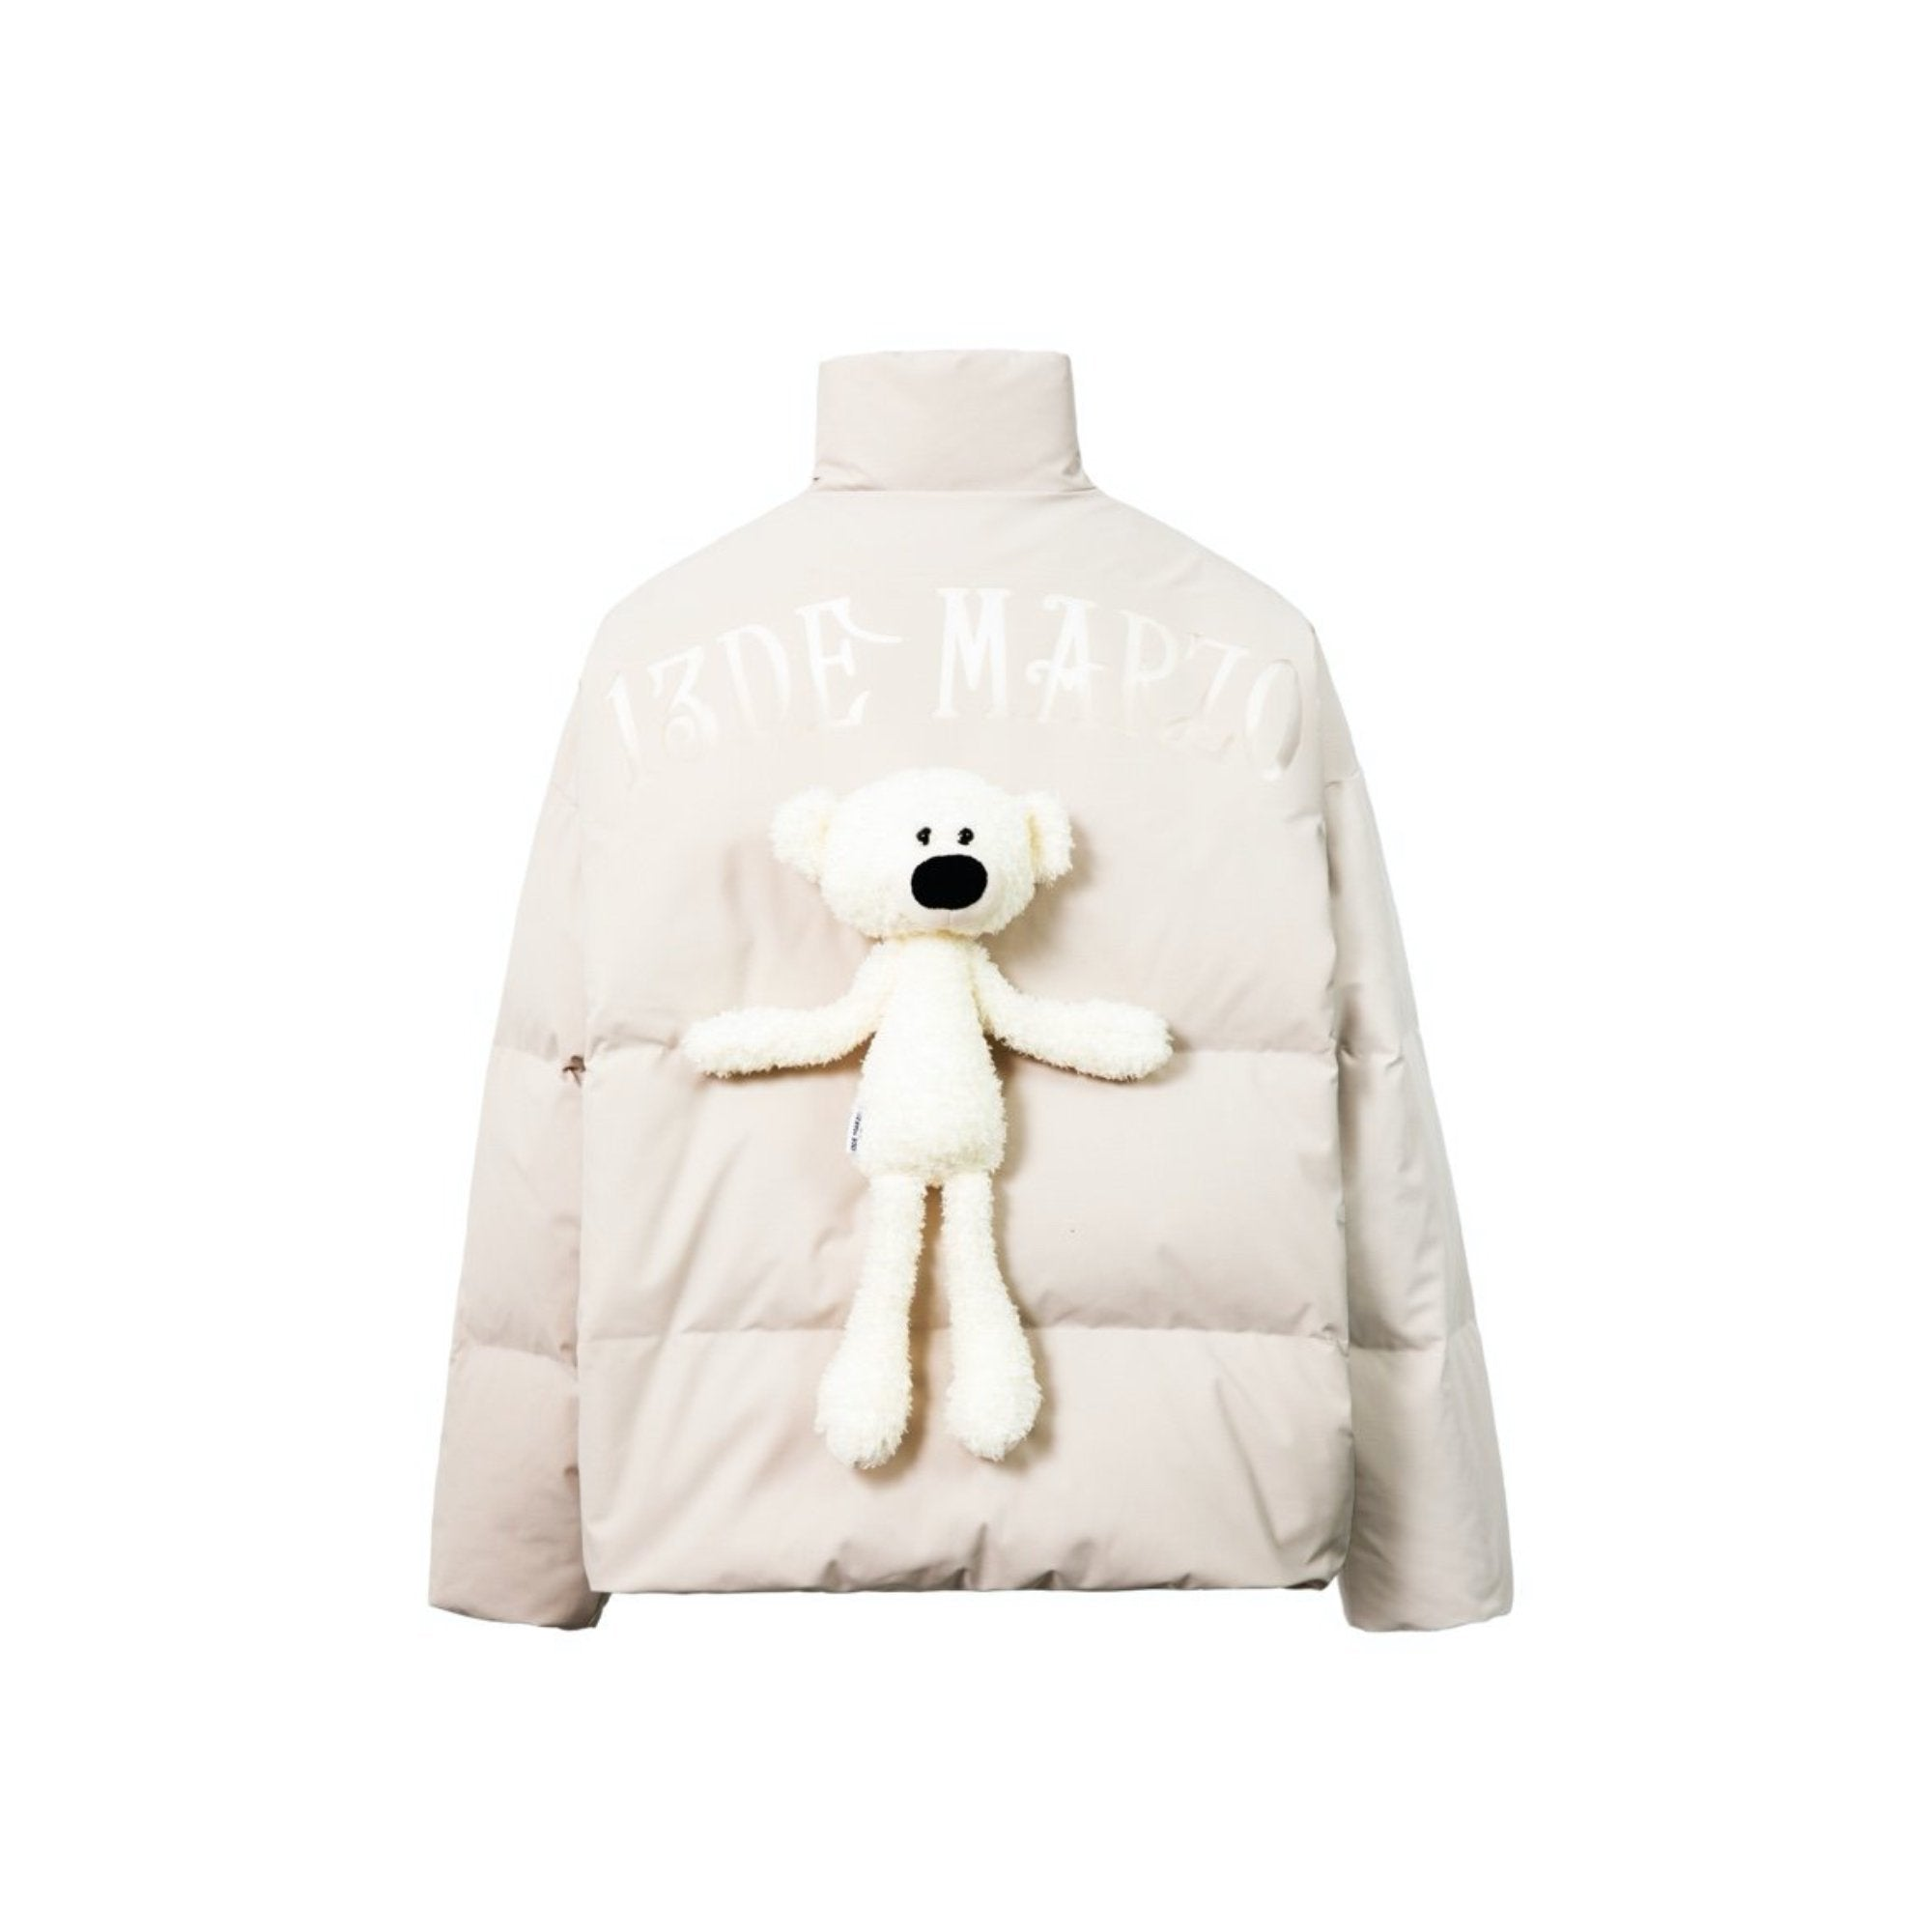 13 DE MARZO Teddy Bear Translucence Down Jacket Bone White | MADA IN CHINA